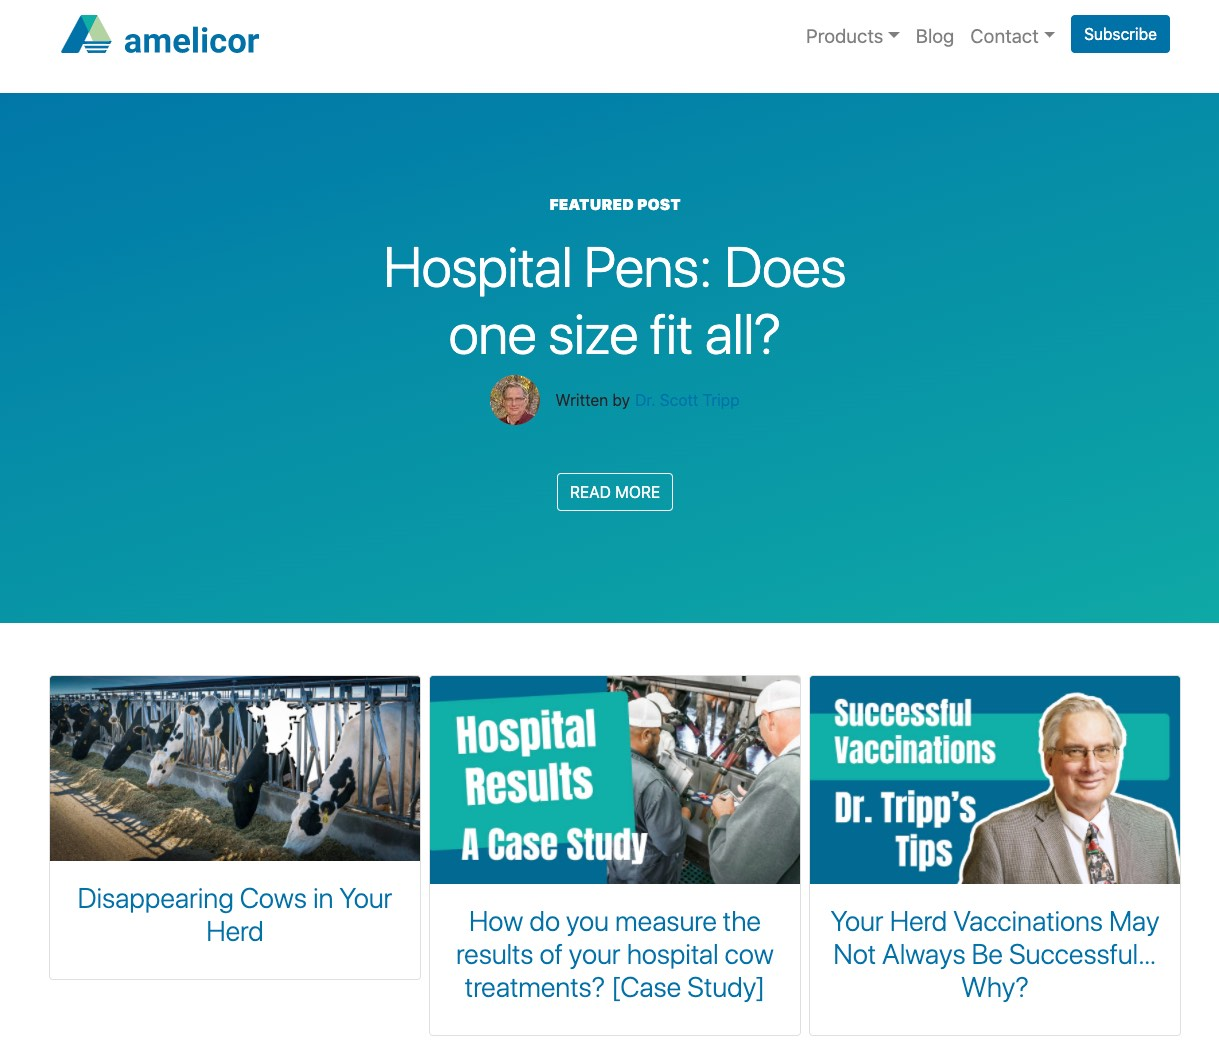 Amelicor Blog - All about Health Data